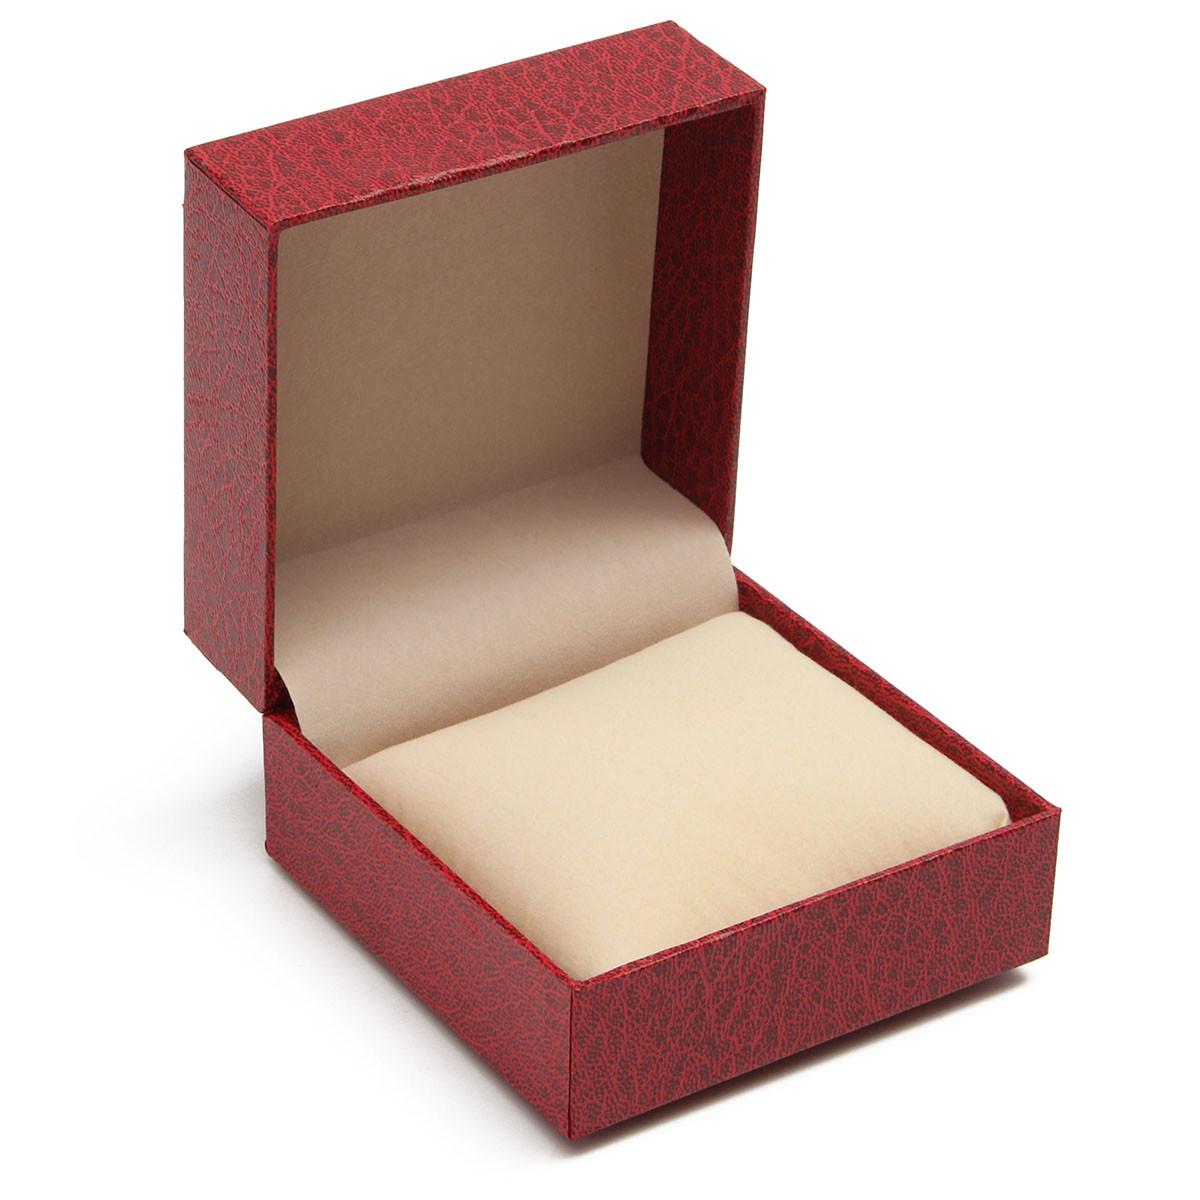 Red Clamshell Wristwatch Bracelet Jewelry Gift Display Storage Box Case Holder